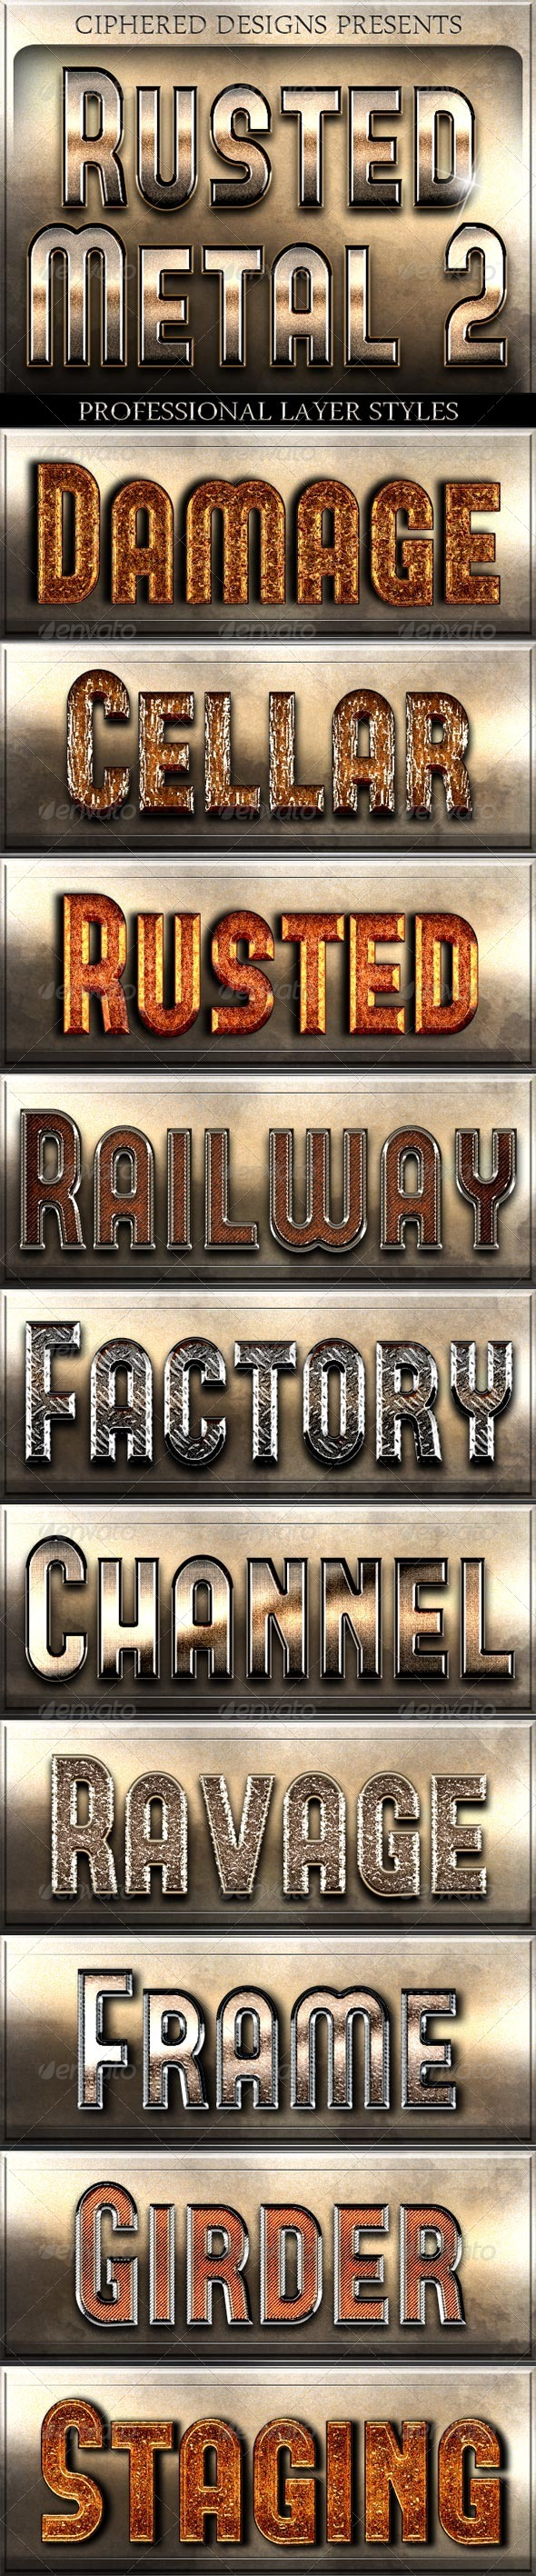 Rusted Metal 2 - Professional Layer Styles - Text Effects Styles